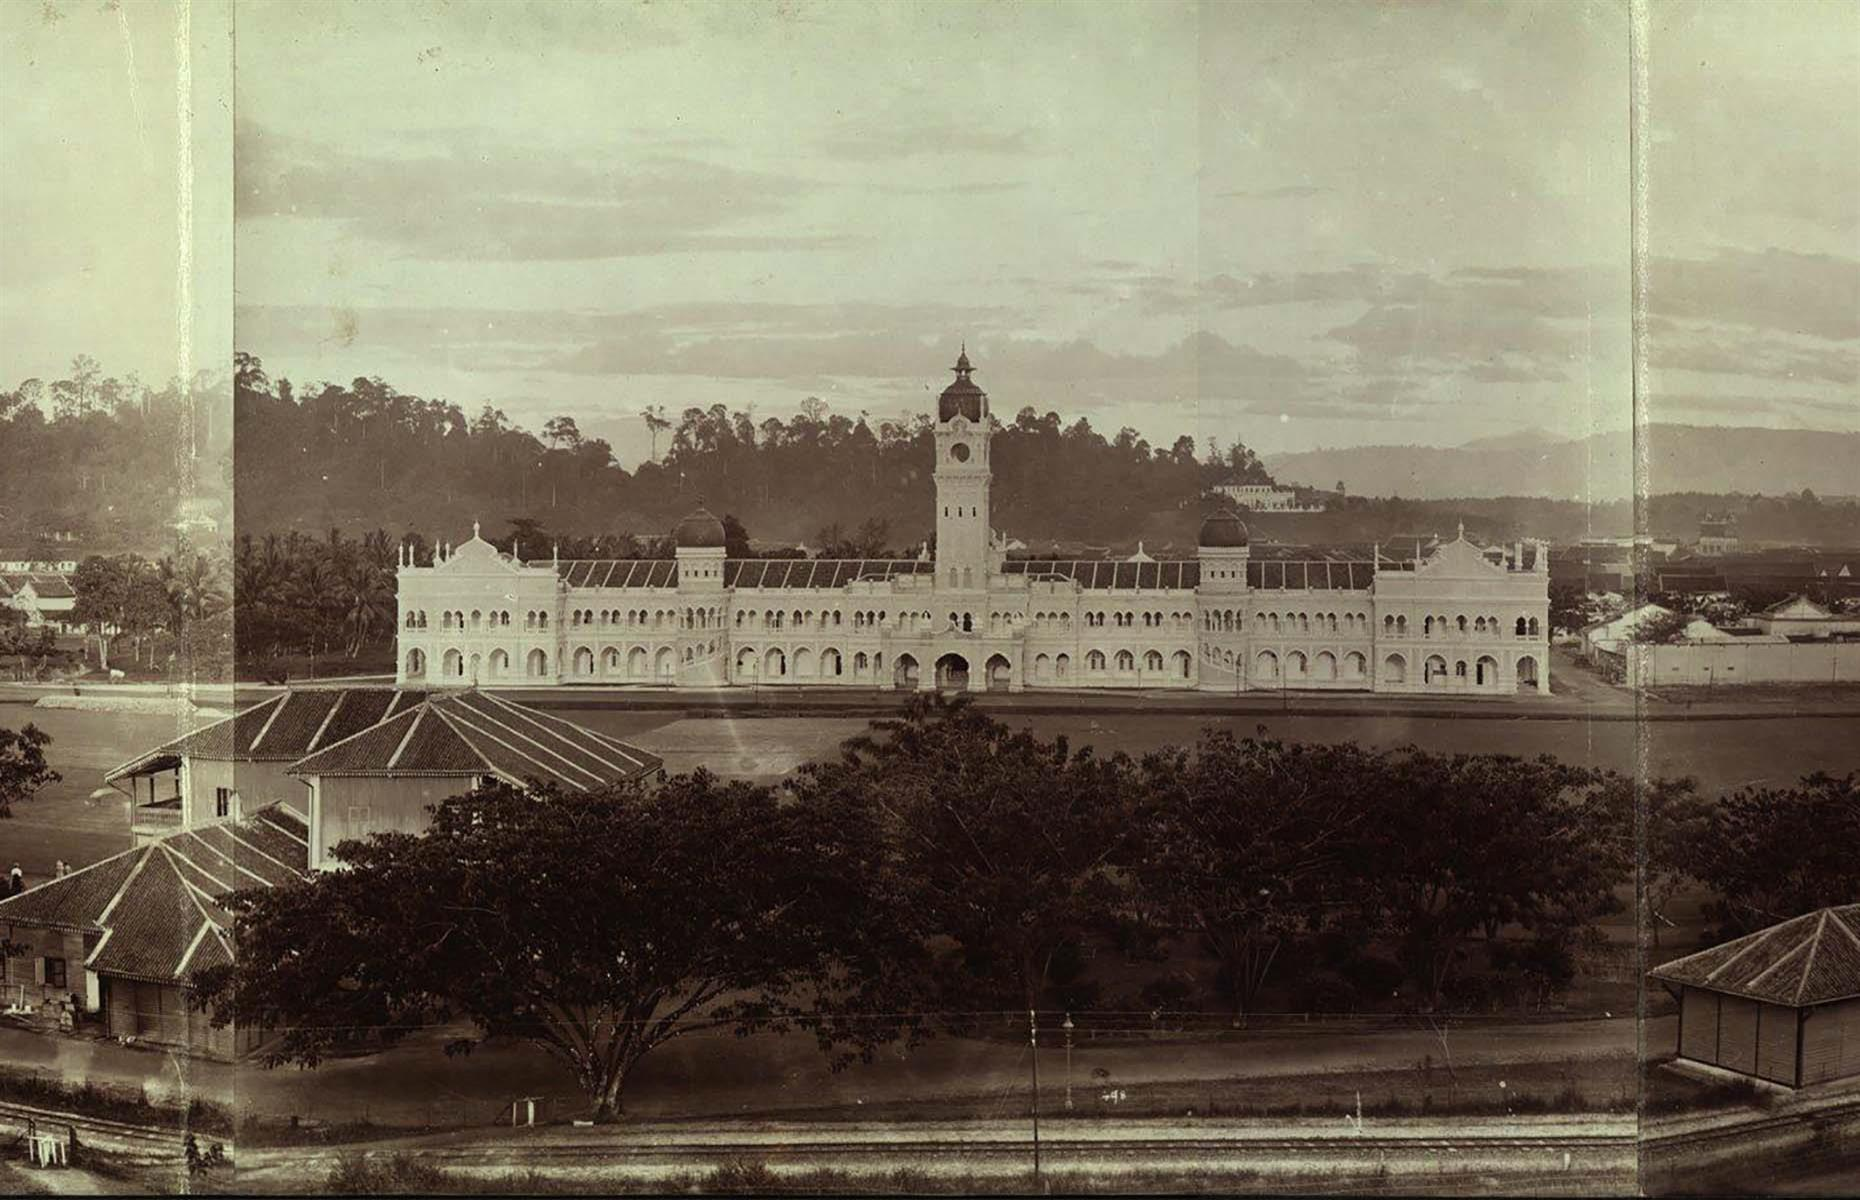 Slide 6 of 27: Originally built to house the British colonial administration in Kuala Lumpur, the Government Offices building, as it was then known, was opened in 1897, and is photographed here in the early 1900s. Located in the city center, the ornate pile was the grandest in Kuala Lumpur at the time – the city was still in its early days, having only been founded in 1857.